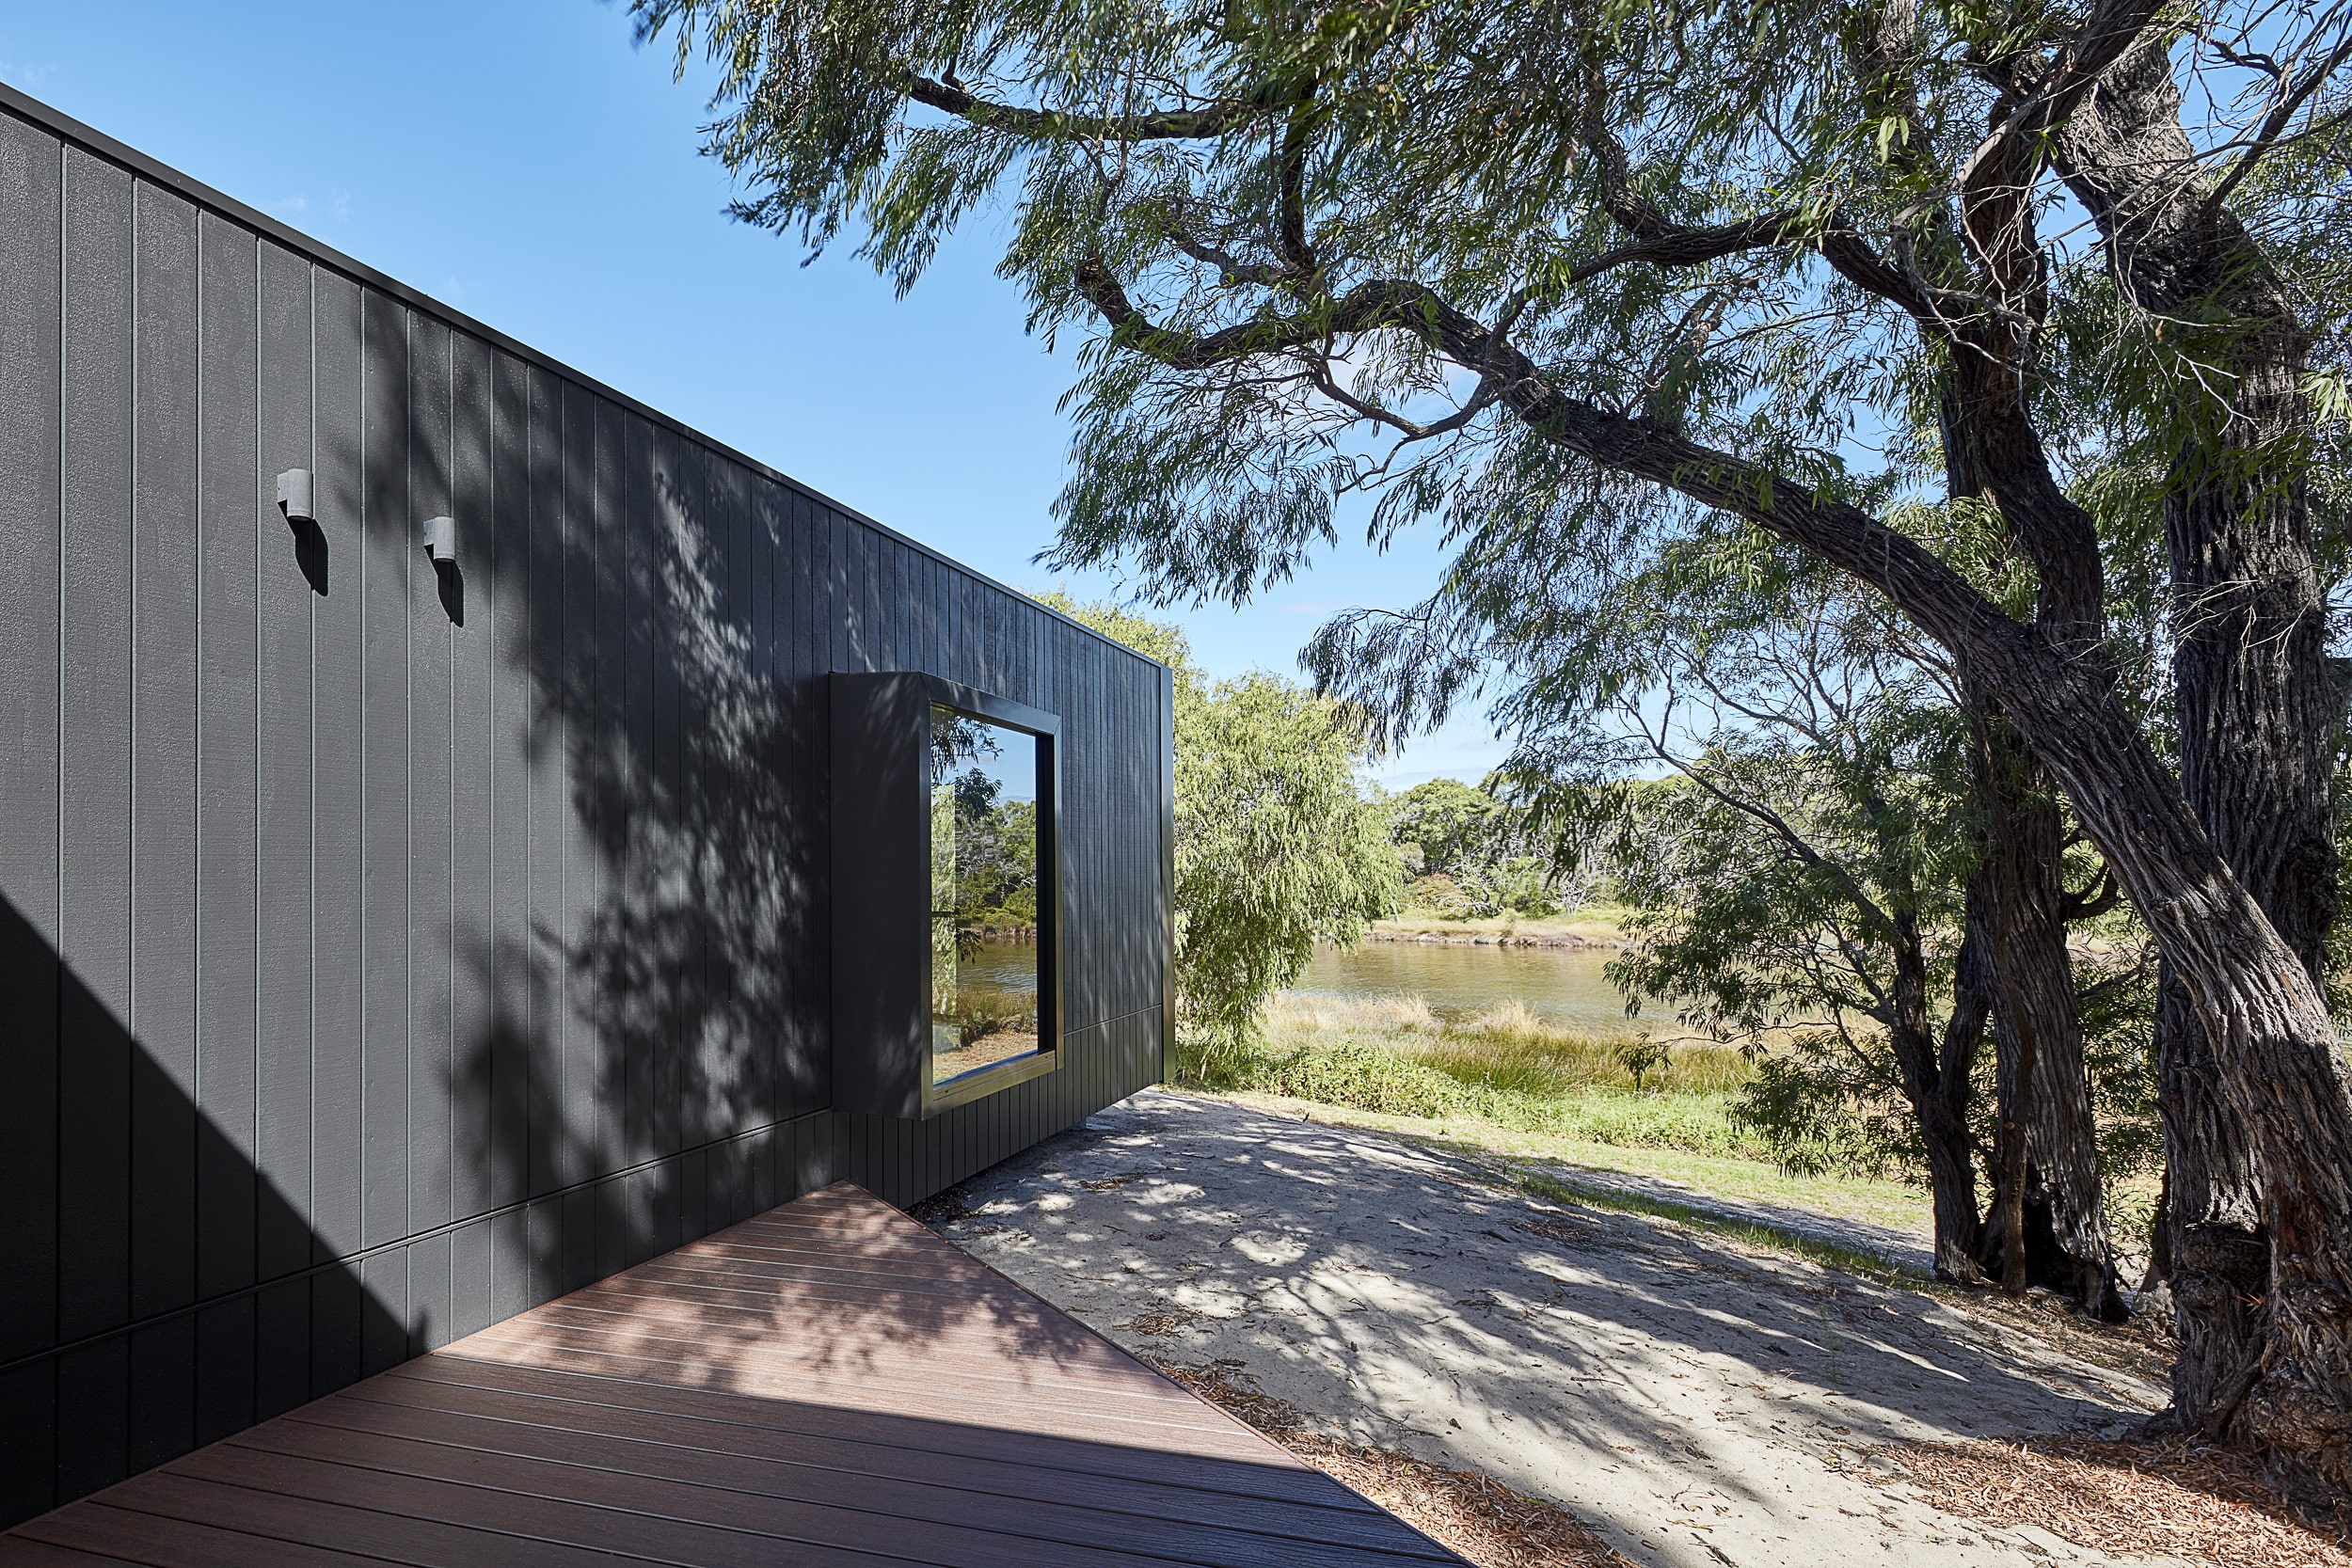 82 Degrees By Meaghan White Architect Local Australian ...